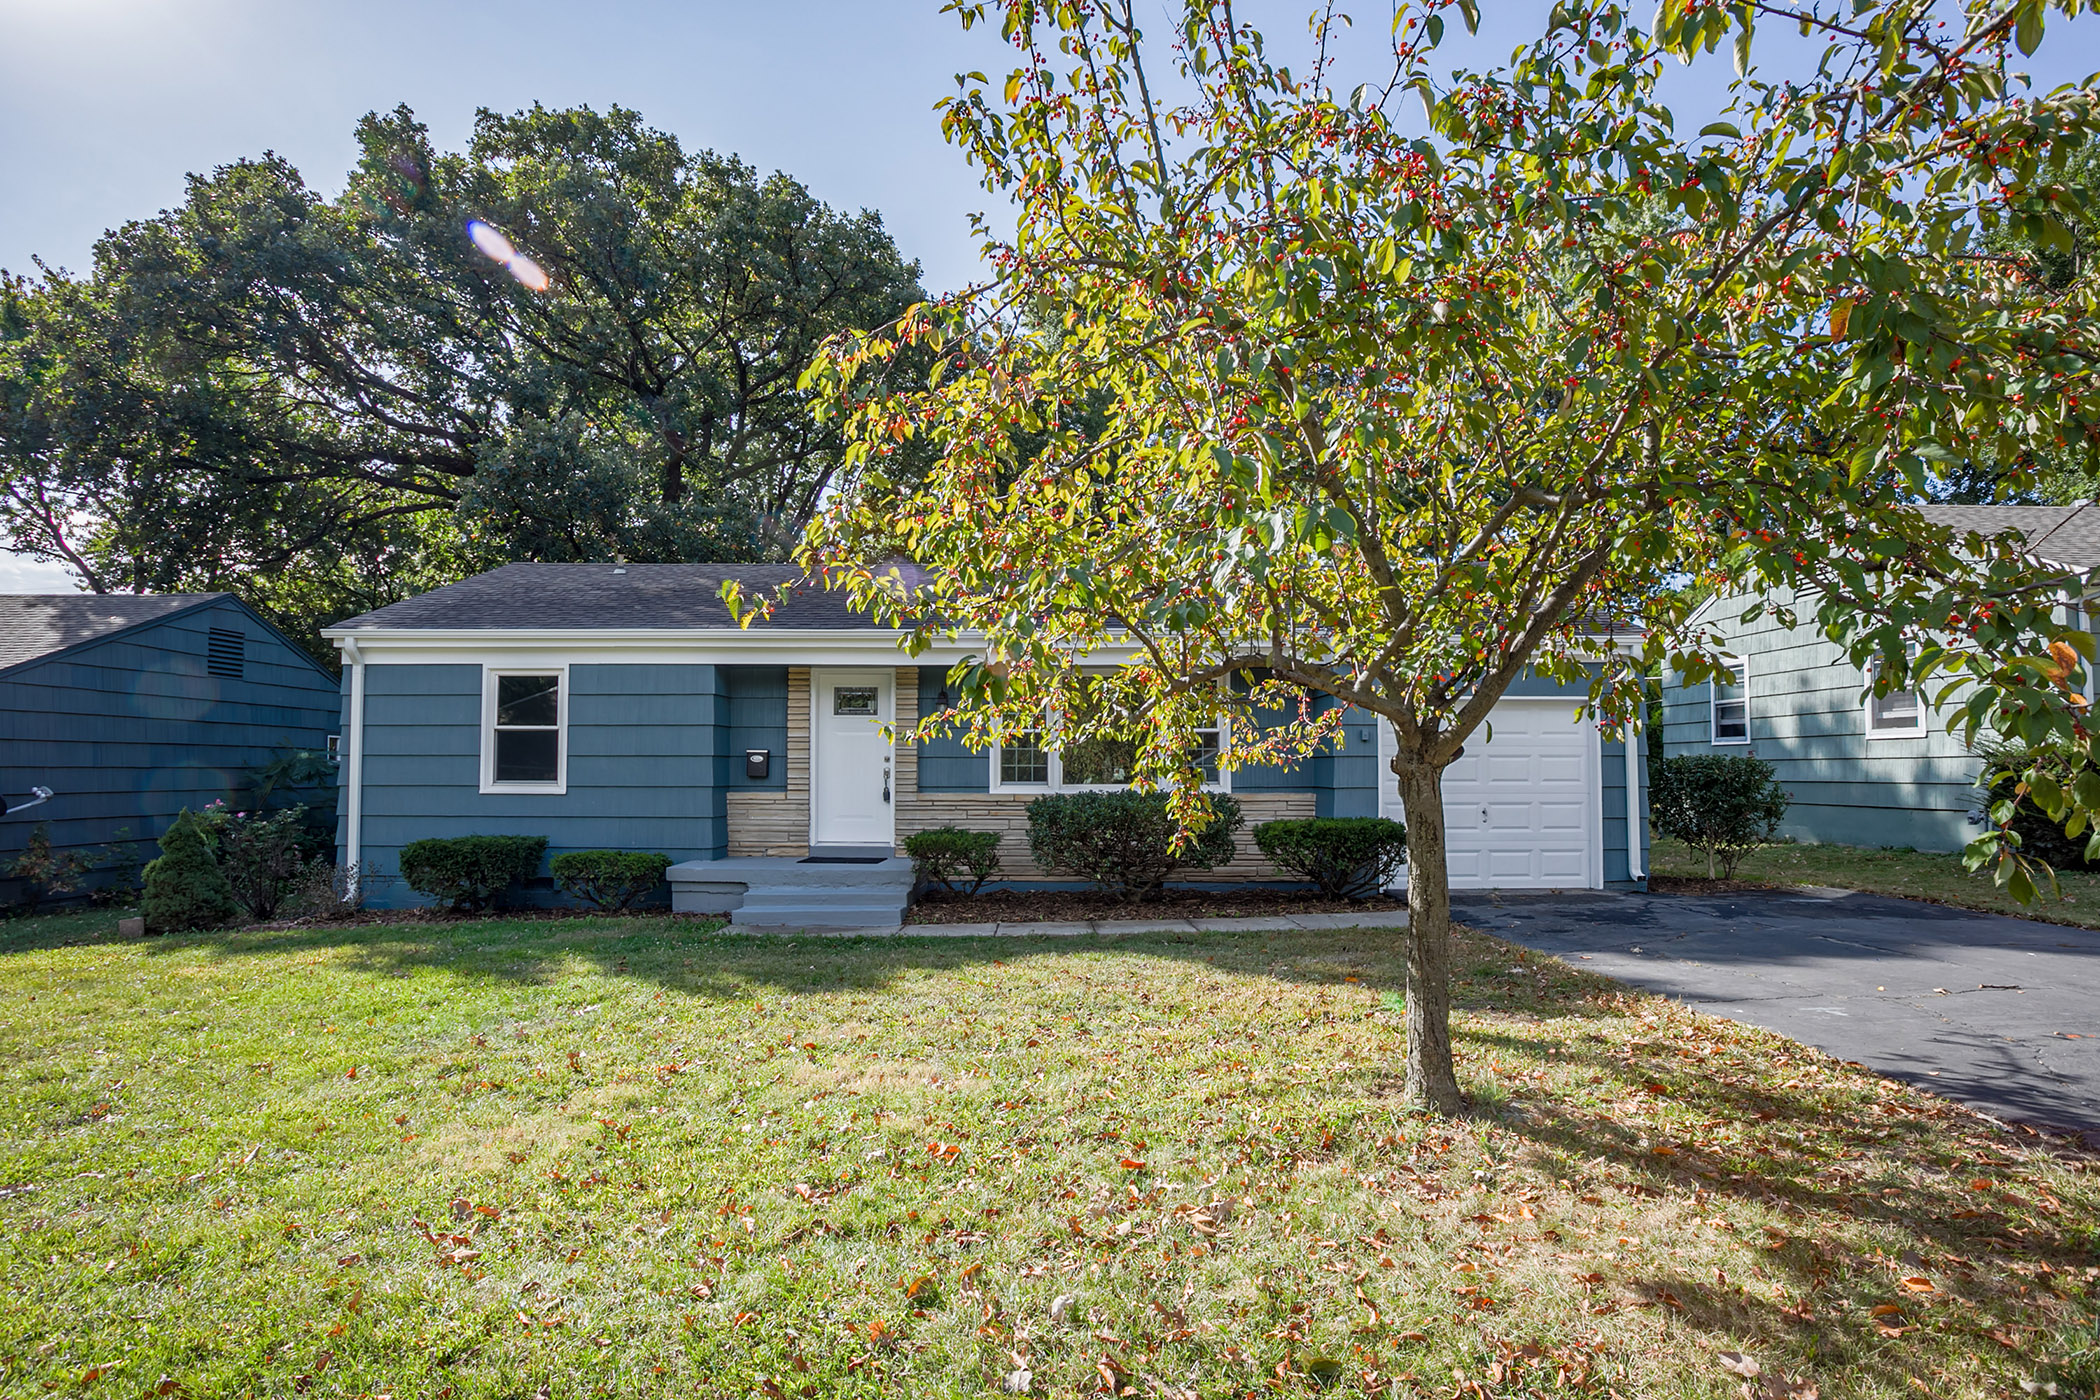 JUST LISTED! 2 OPEN  HOUSES! COMPLETELY RENOVATED TRUE RANCH! MOVE-IN READY!